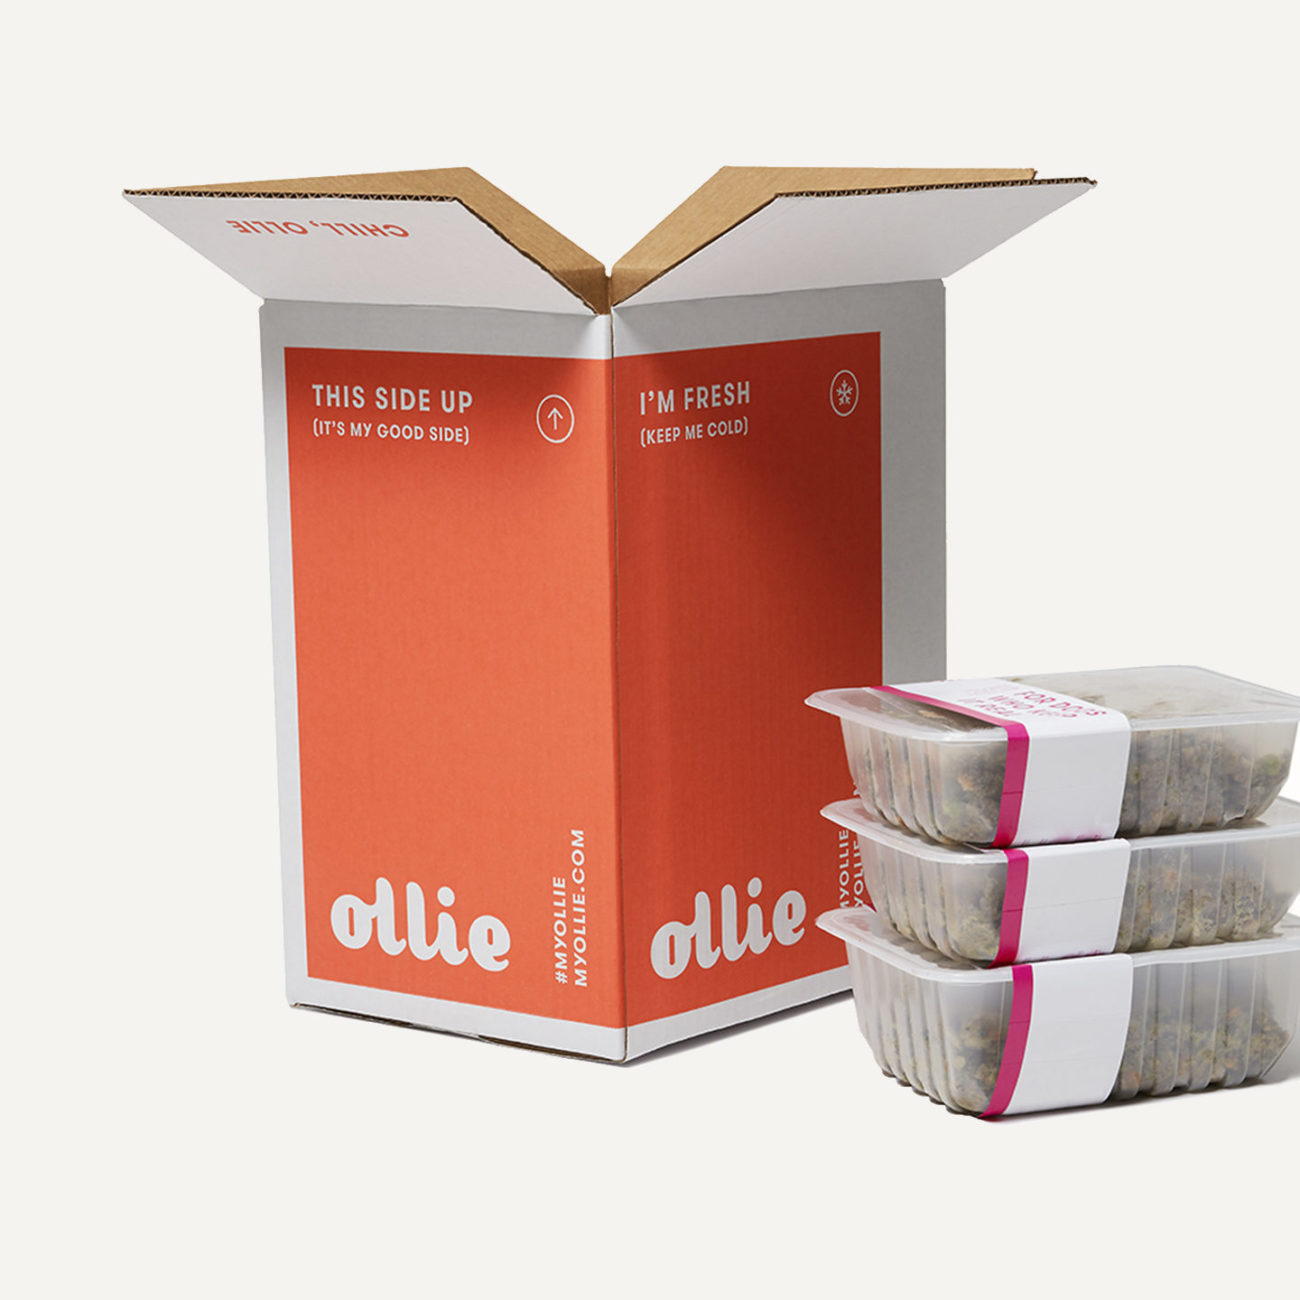 Ollie switched to reusable containers and scoops in first-time orders that can be reused for years Release Notes: 7 New Sustainability Properties to Reduce and Reuse Packaging